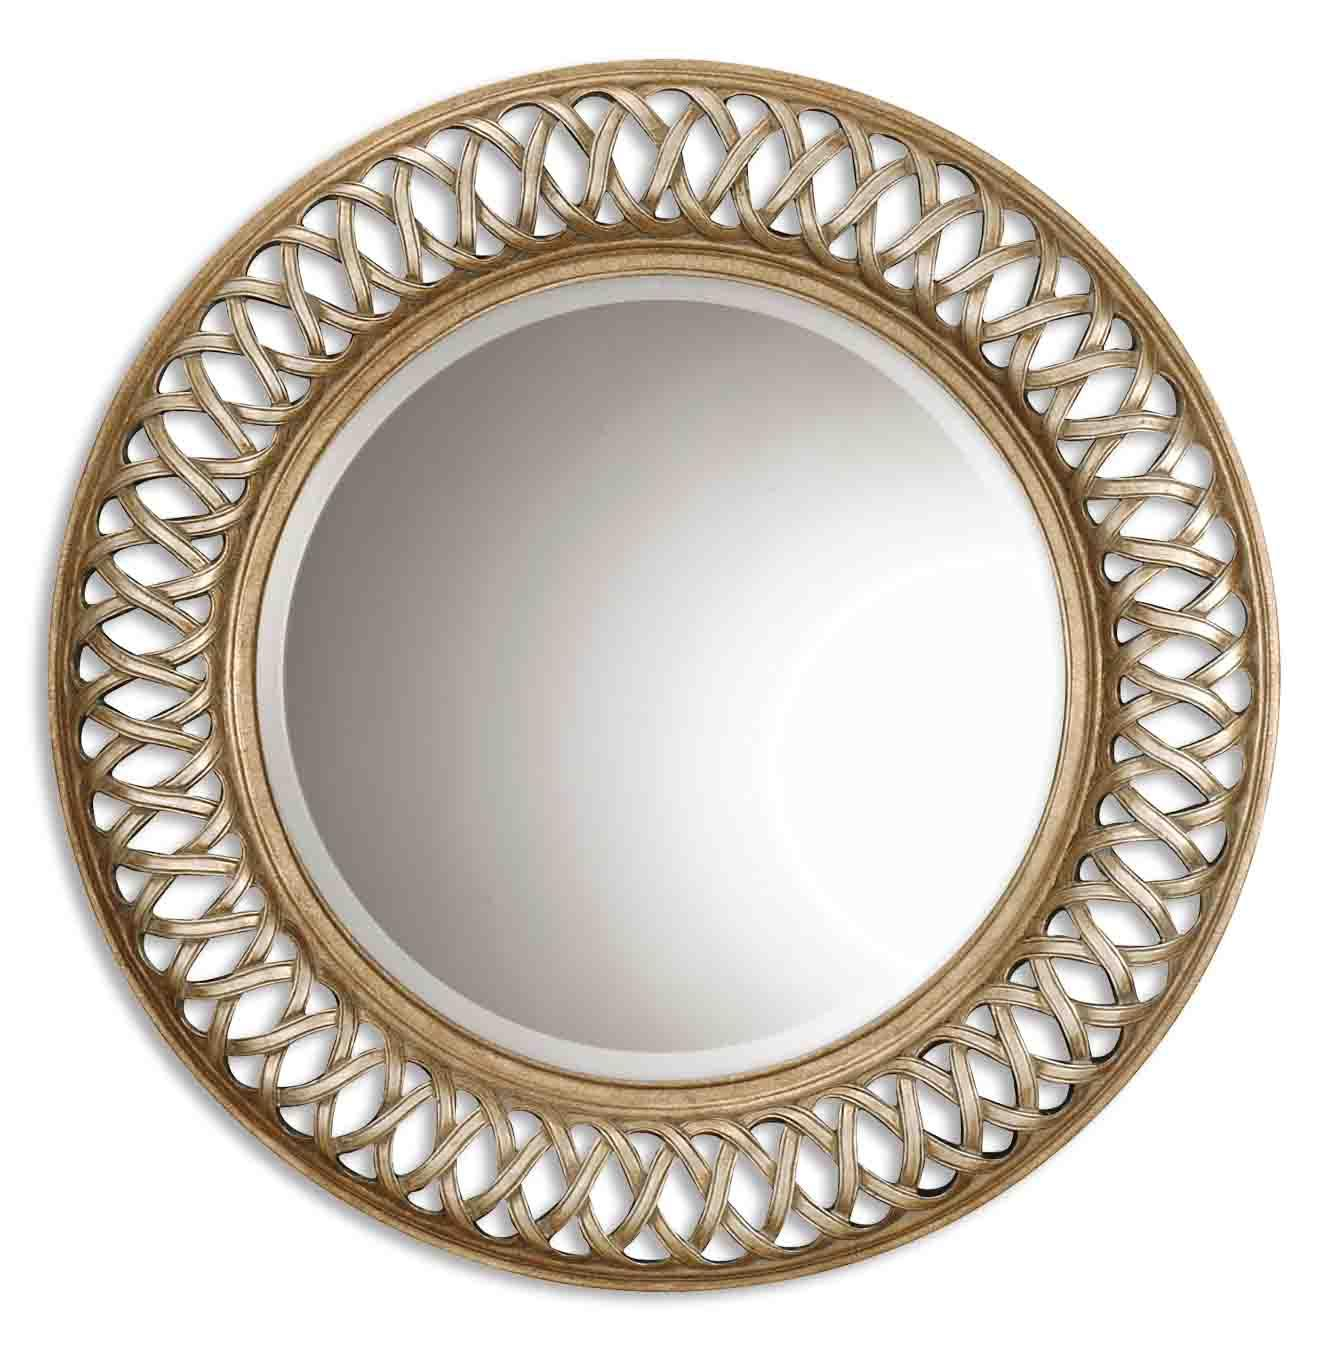 Uttermost Mirrors Entwined U - Item Number: 14028 B